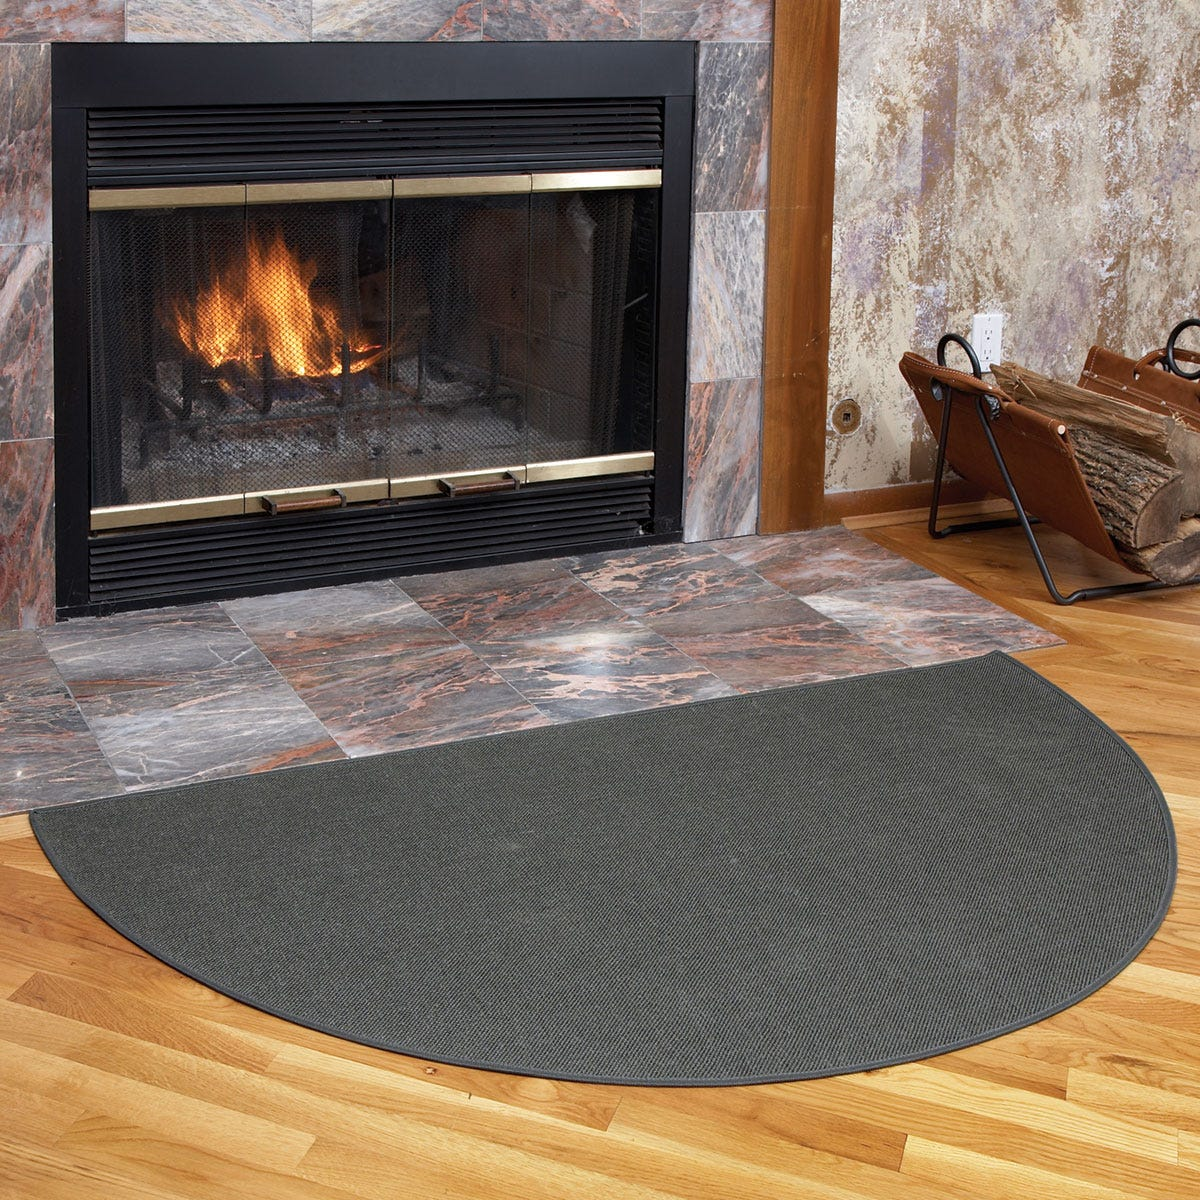 Fireplace Rug Fire Resistant: Guardian Hearth Fireplace Rug (4 Ft.)